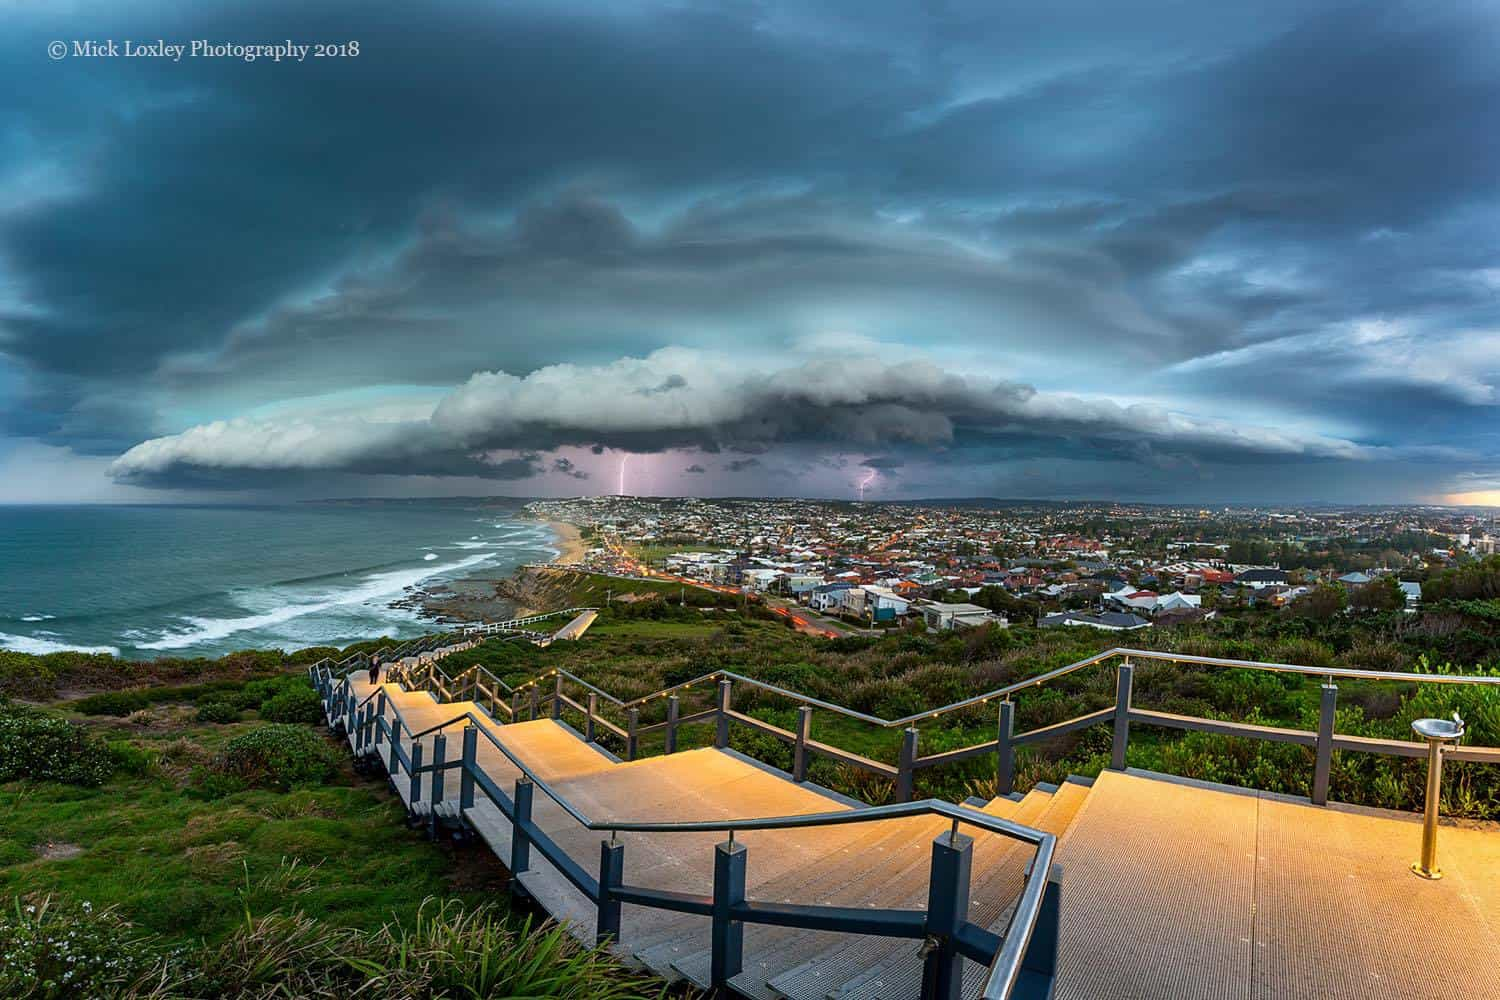 """Newcastle, NSW Australia. Storm season is """"officially"""" over here in Australia, but as we know, Mother Nature will often offer up a few surprises, and this beauty that rolled through last Thursday was just stunning"""